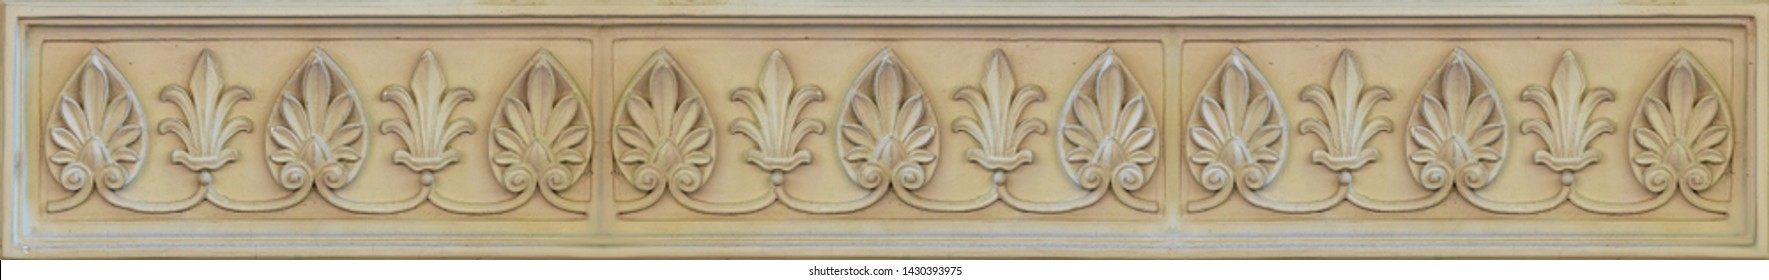 Elements of architectural decoration of buildings, plaster stucco, wall texture, plaster molding and patterns. On the streets in Georgia, public places.